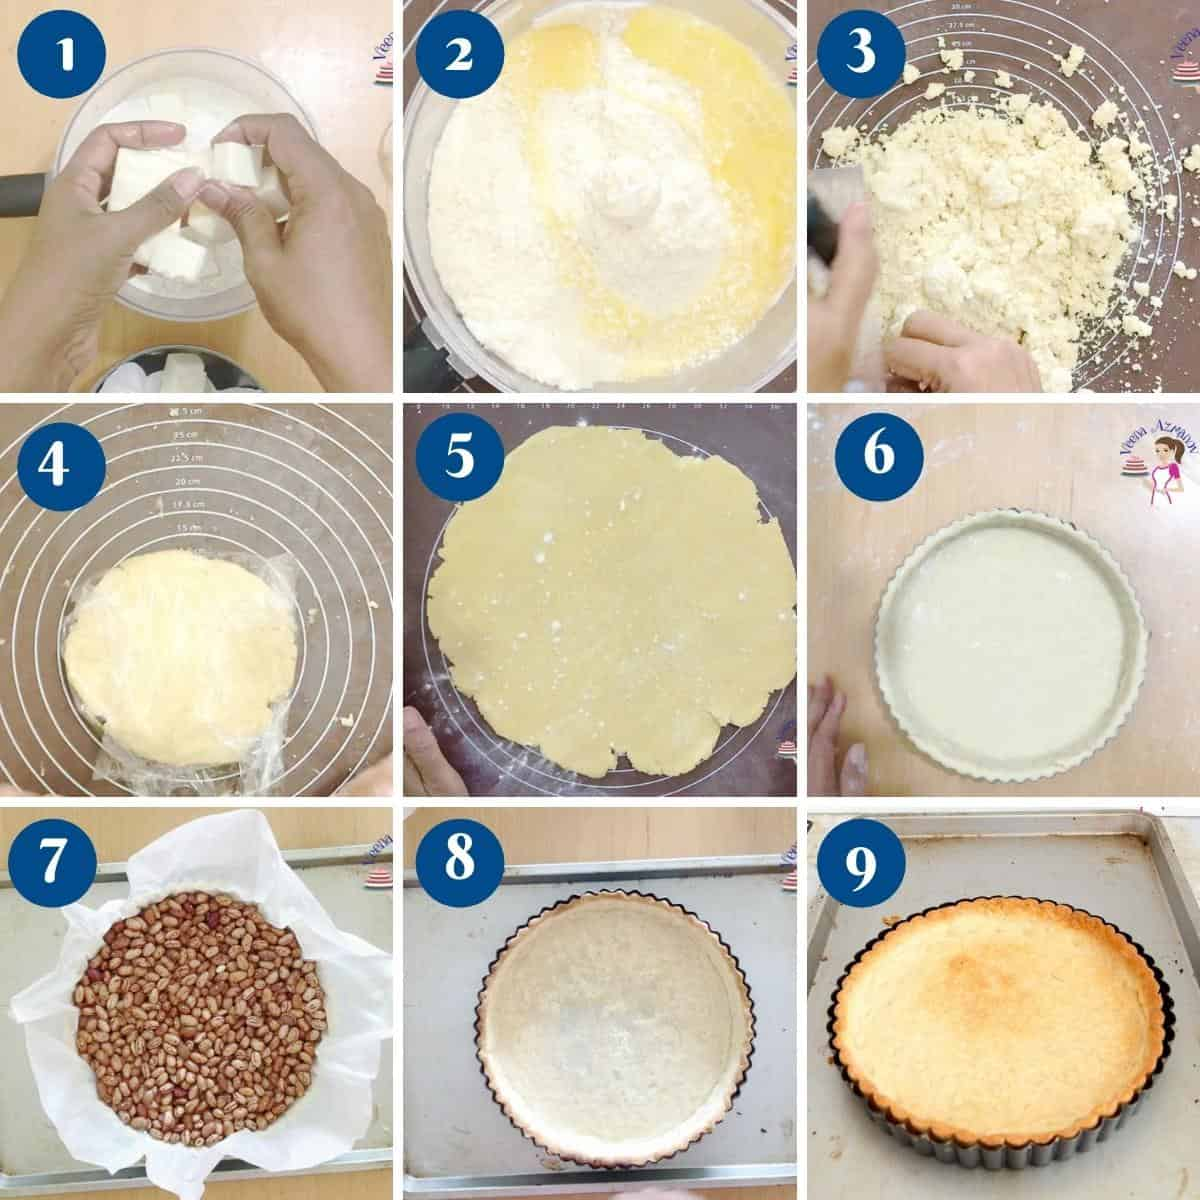 Progress pictures collage making shortcrust pastry for blueberry tart.